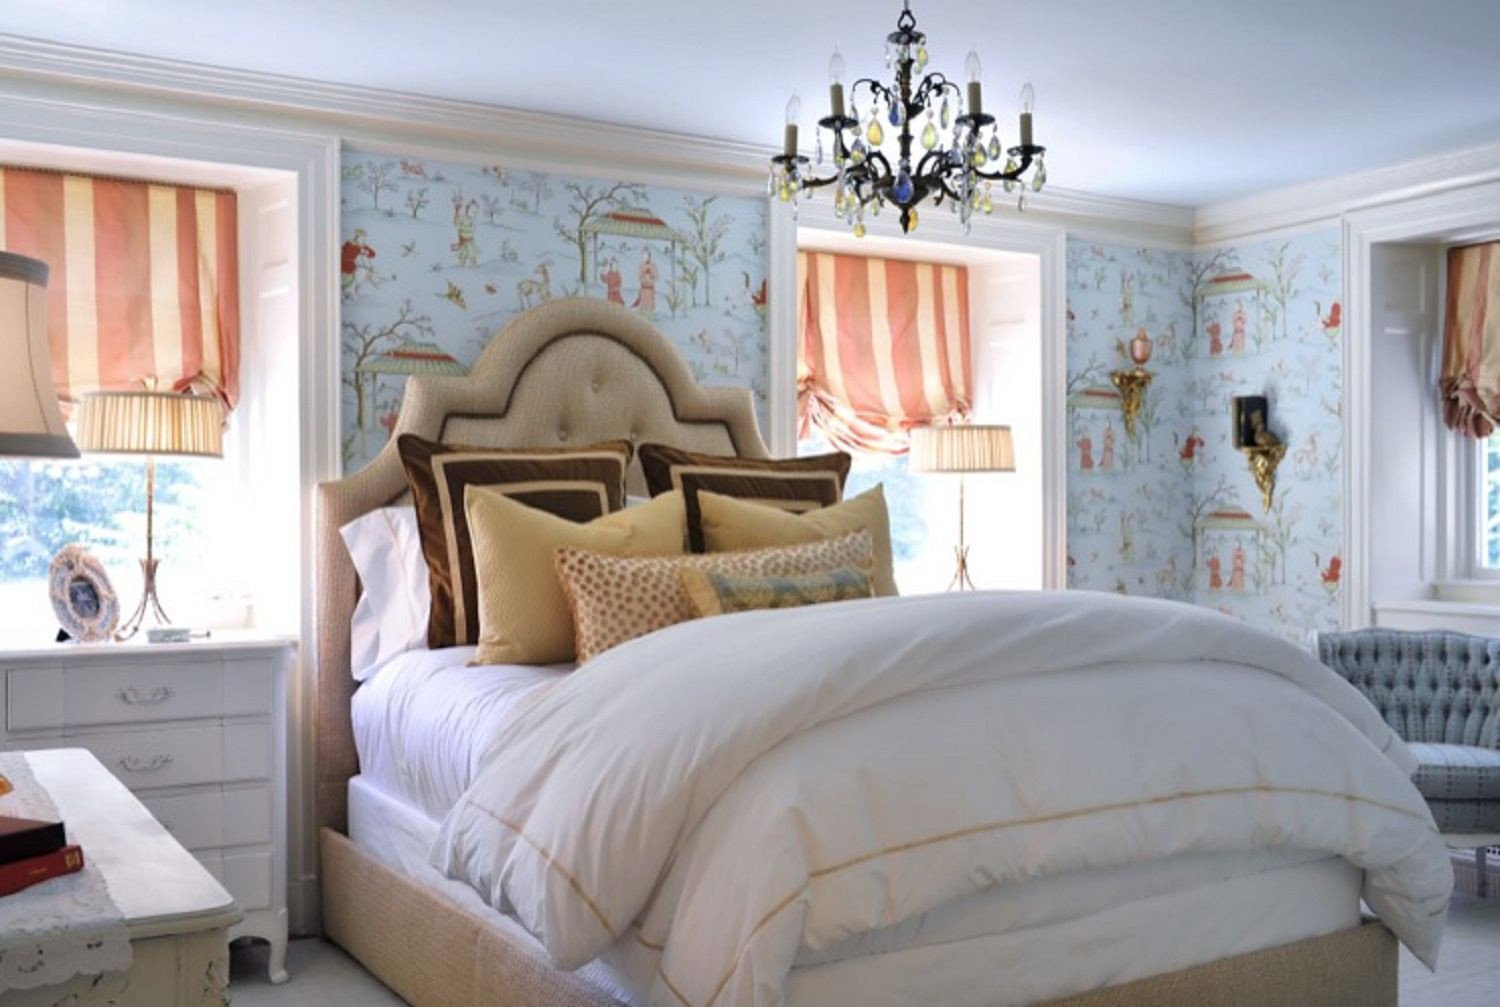 French Provincial Bedroom Furniture Elegant Ideas for French Country Style Bedroom Decor